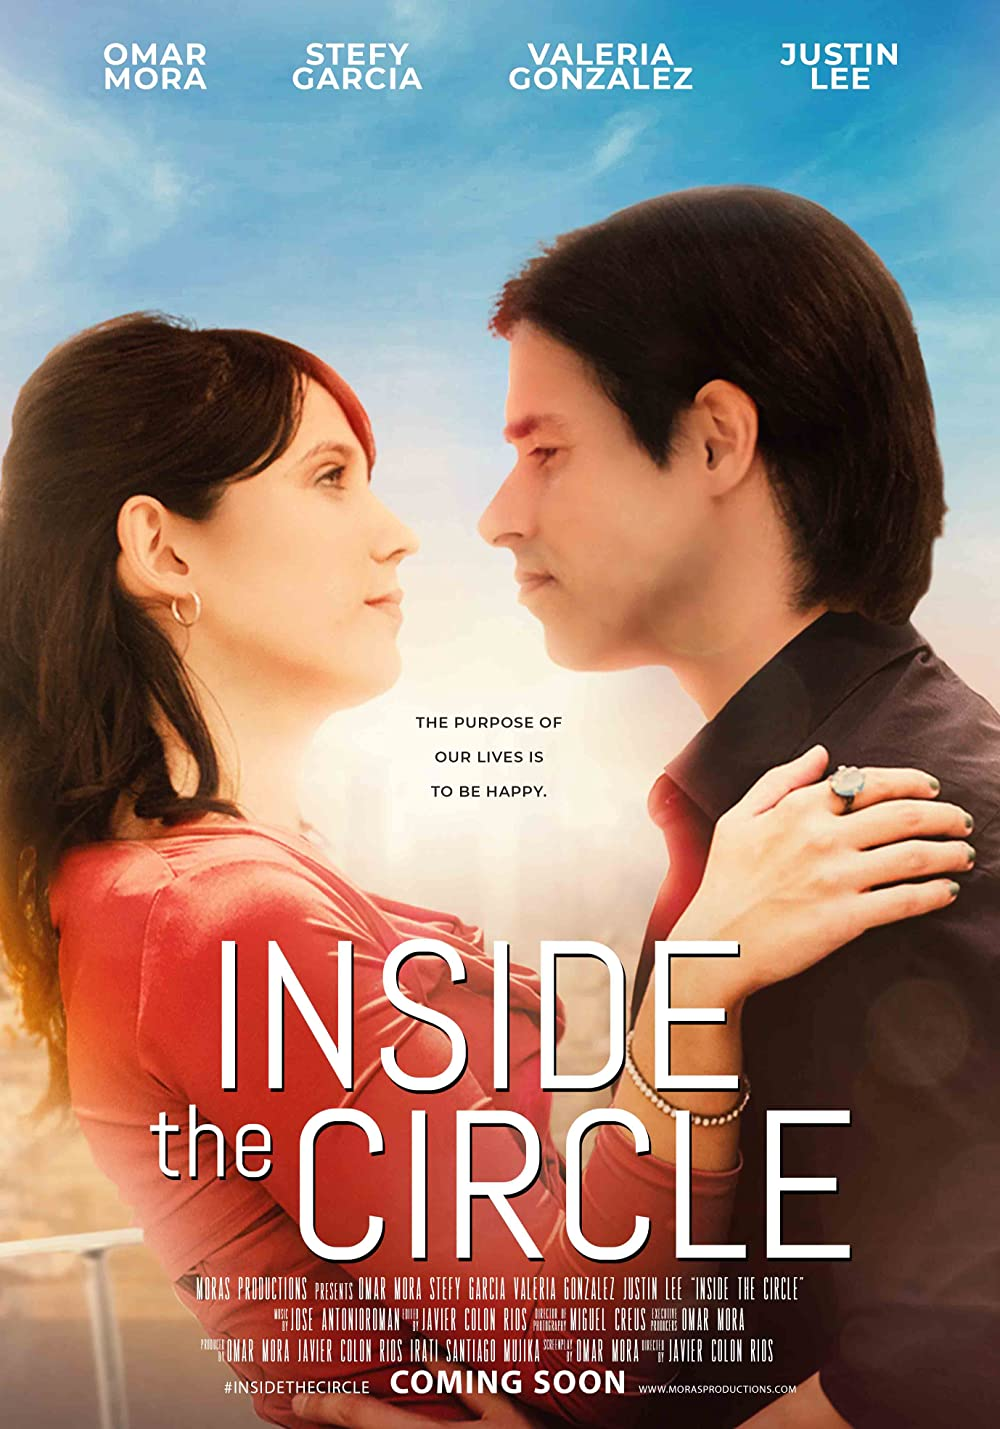 Inside the Circle (2021) Full Movie [In English] With Hindi Subtitles | WebRip 720p [1XBET]